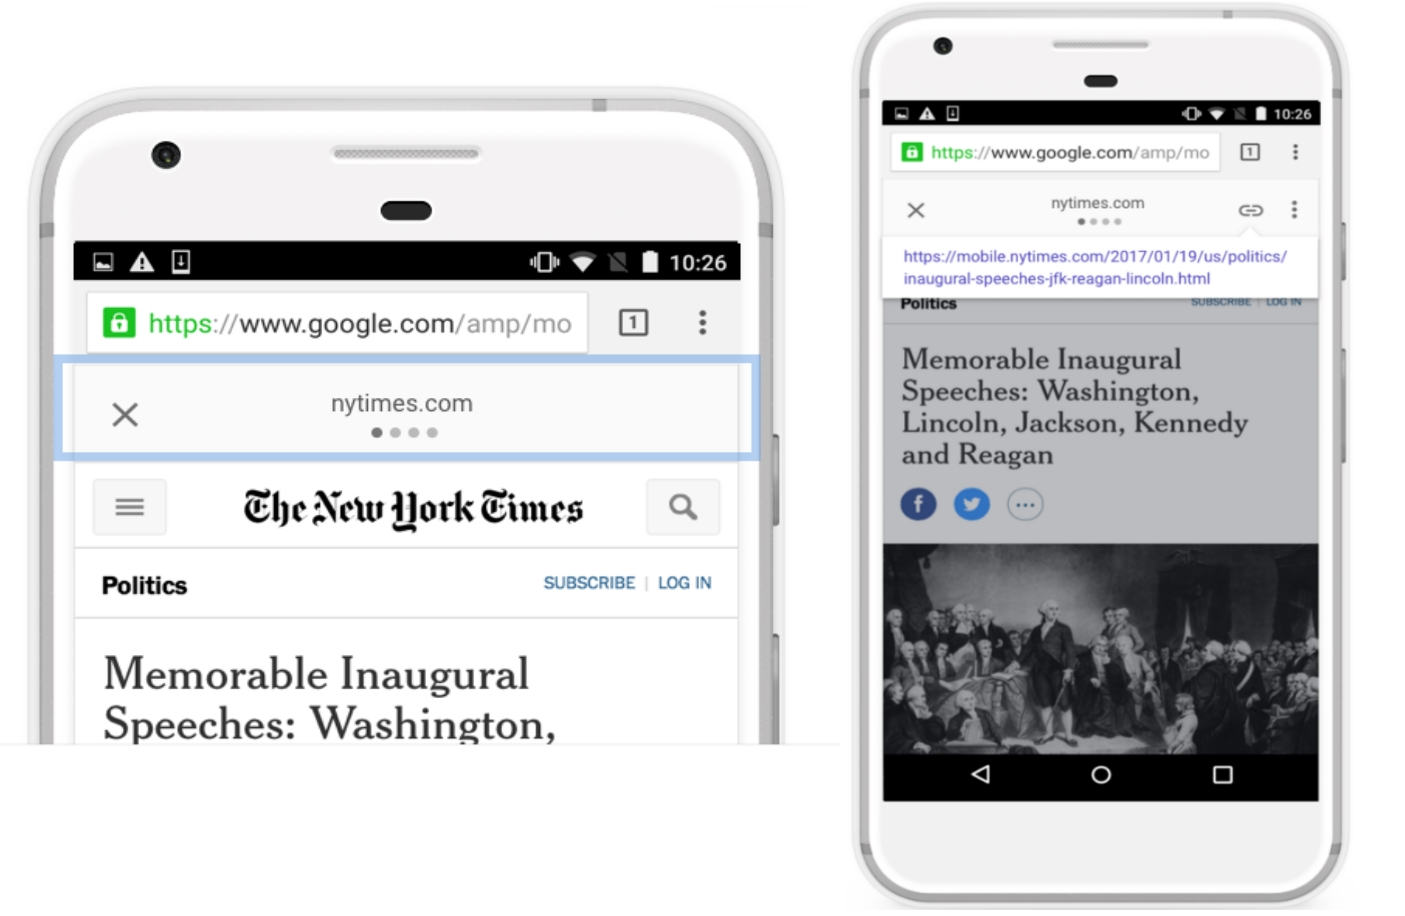 Google is Making it Easier to Share Publisher's Links Via AMP